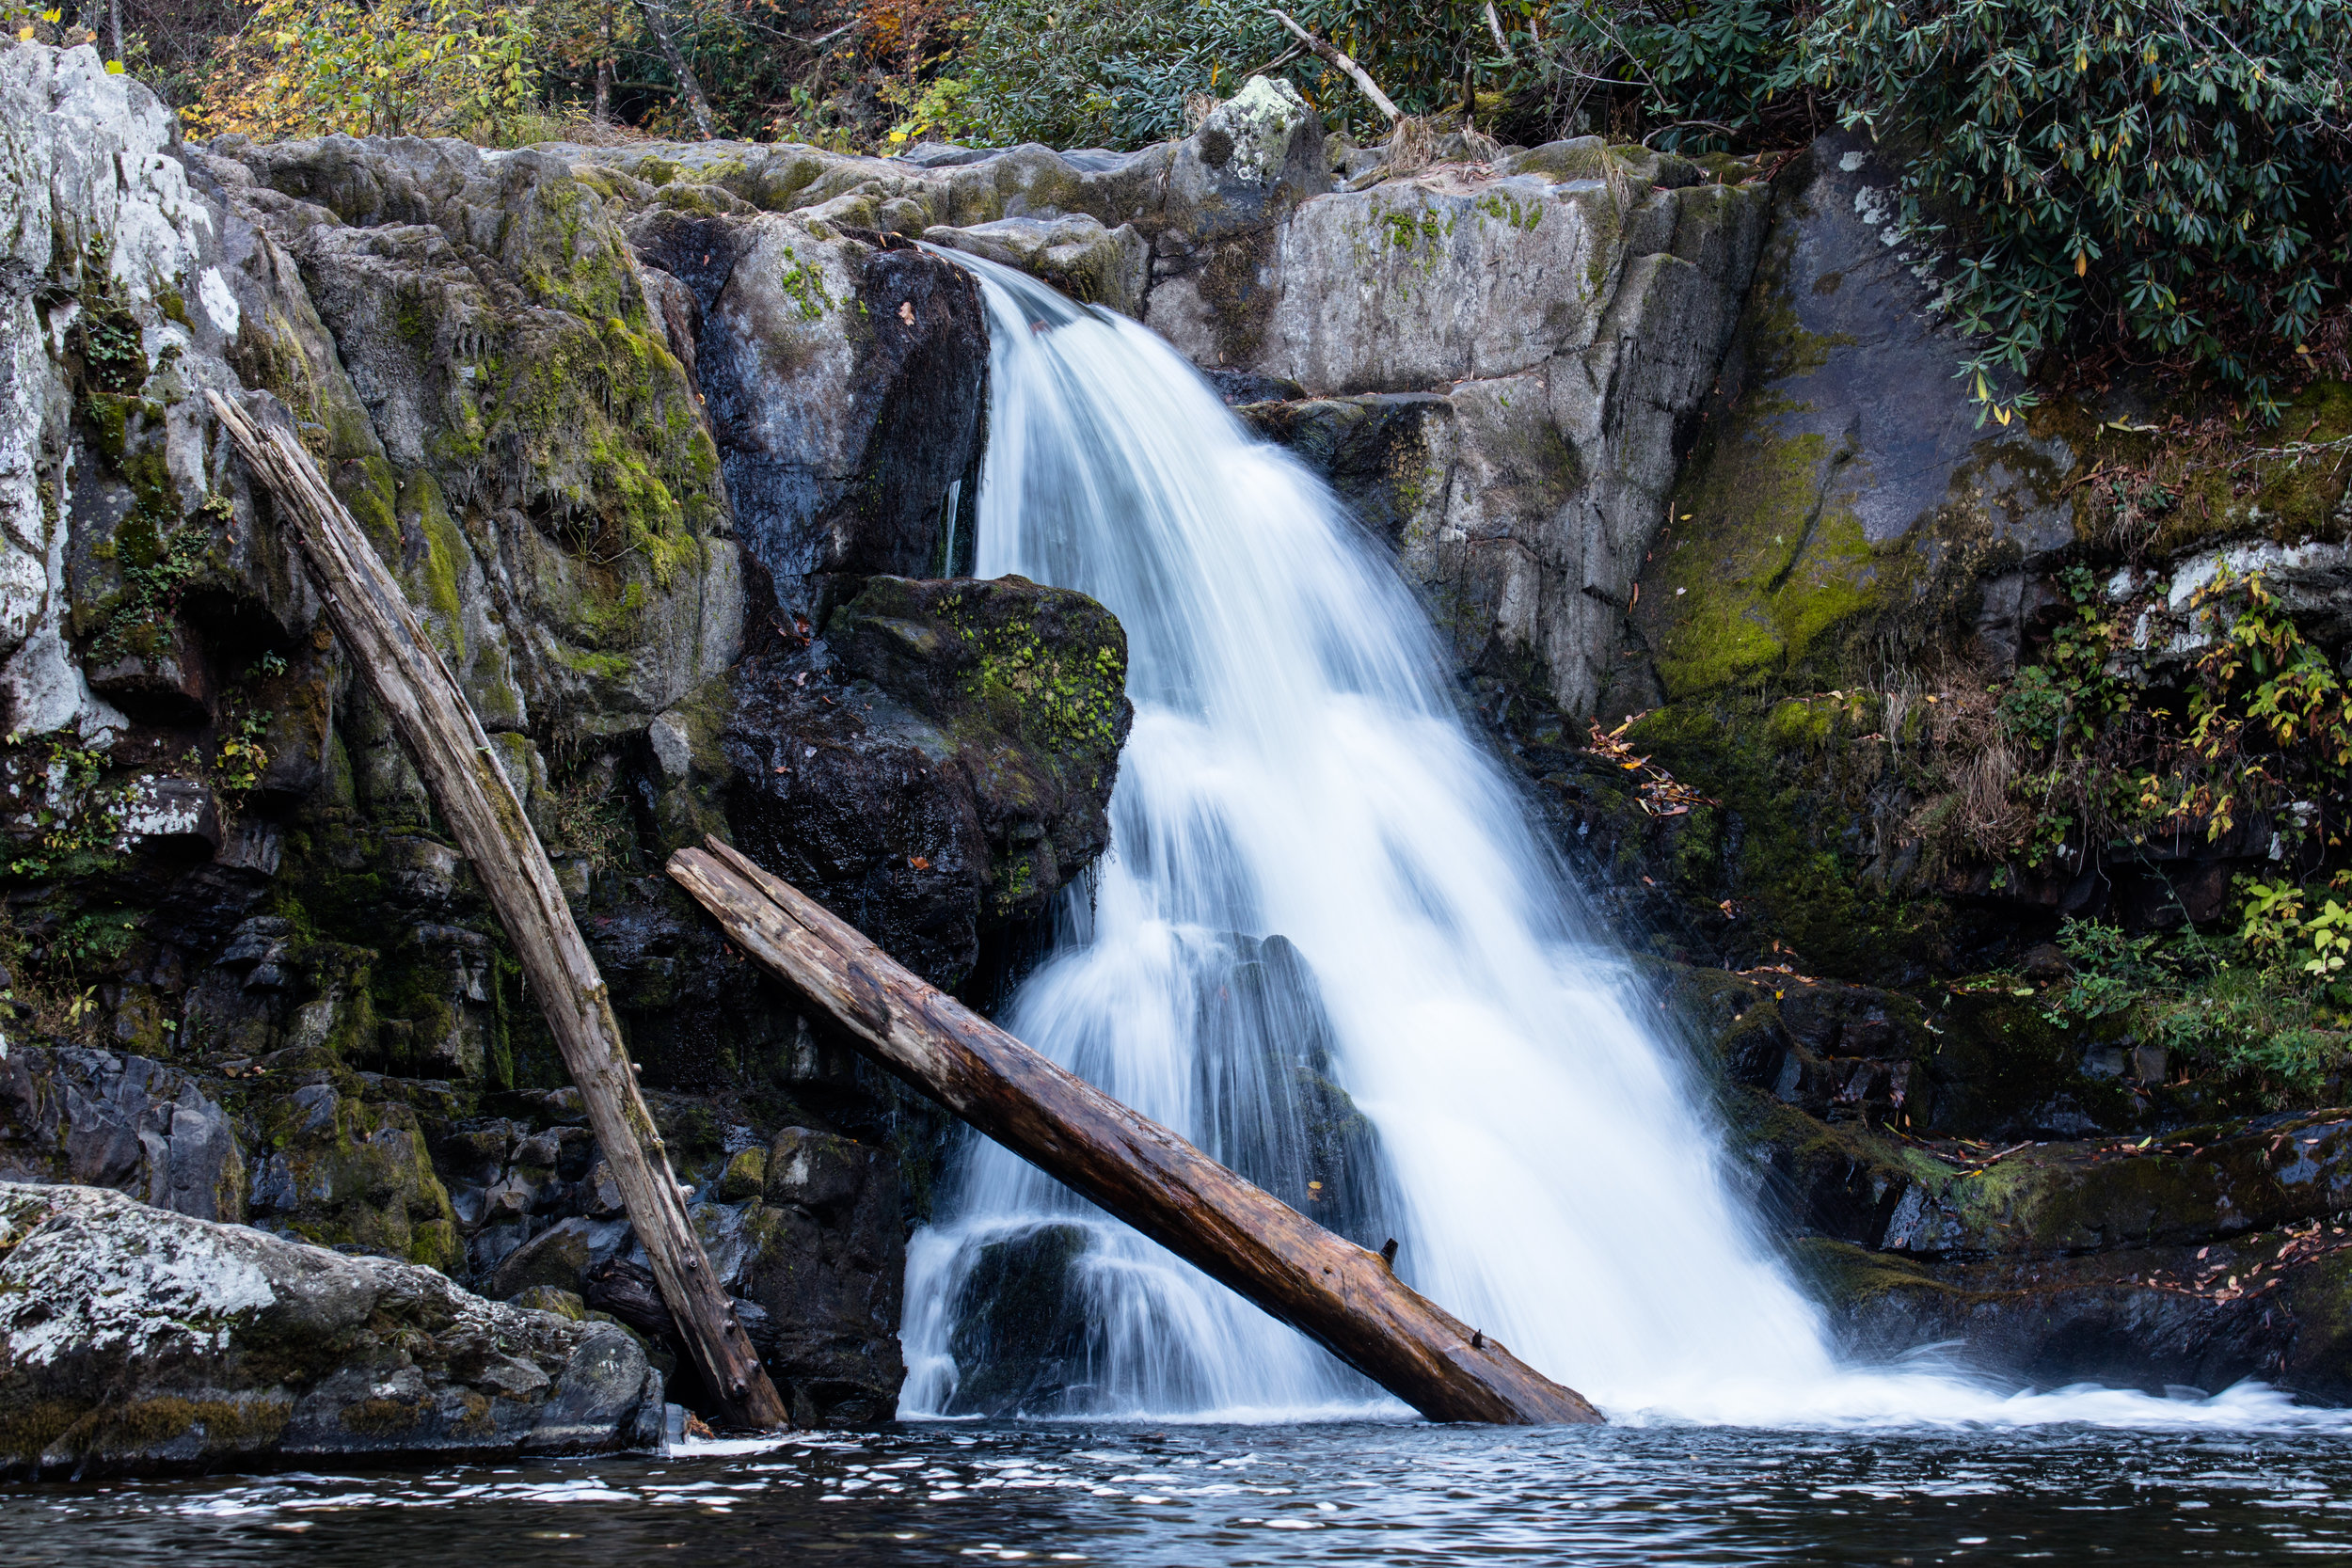 Abrams falls is the reward for a long hike up and down a couple of mountain ridges. Great place to sit and relax before tackling the walk back out to the cove.